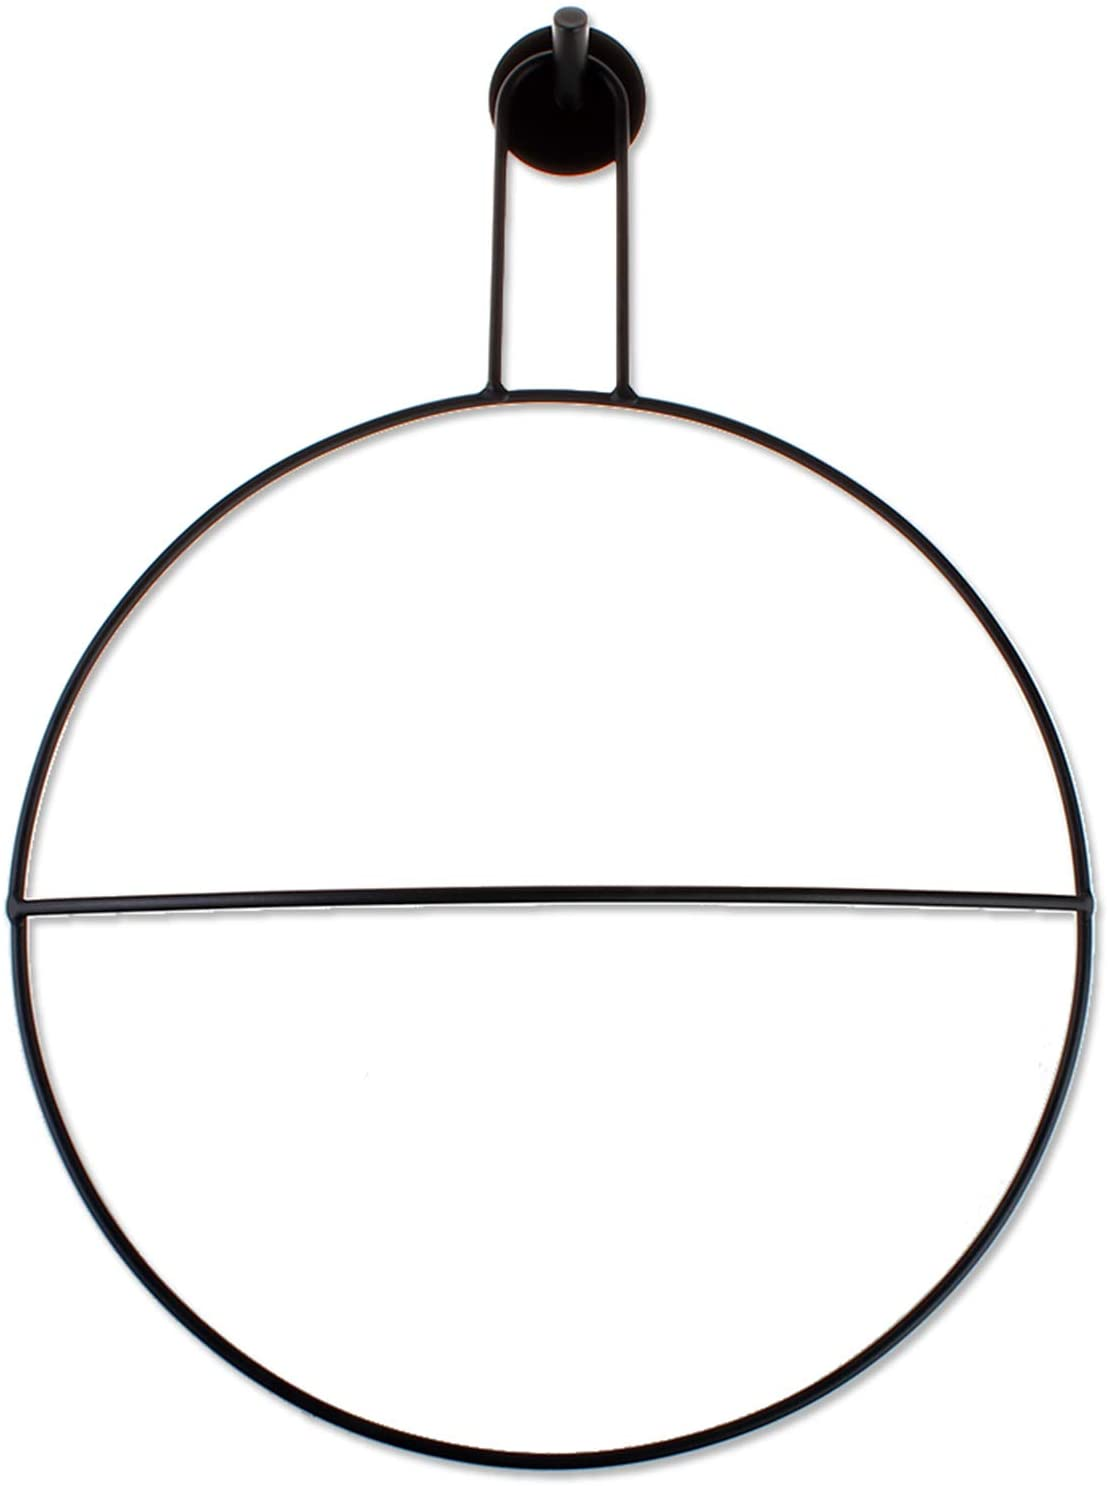 Grneric Matte Black Towel Ring with Wall Hook Bath Accessory Wall Mounted Hardware Accessory Fixture Wall Decor Modern Round Hanger Kitchen Dishcloth Drying (Big 15.8x11.8 inch)